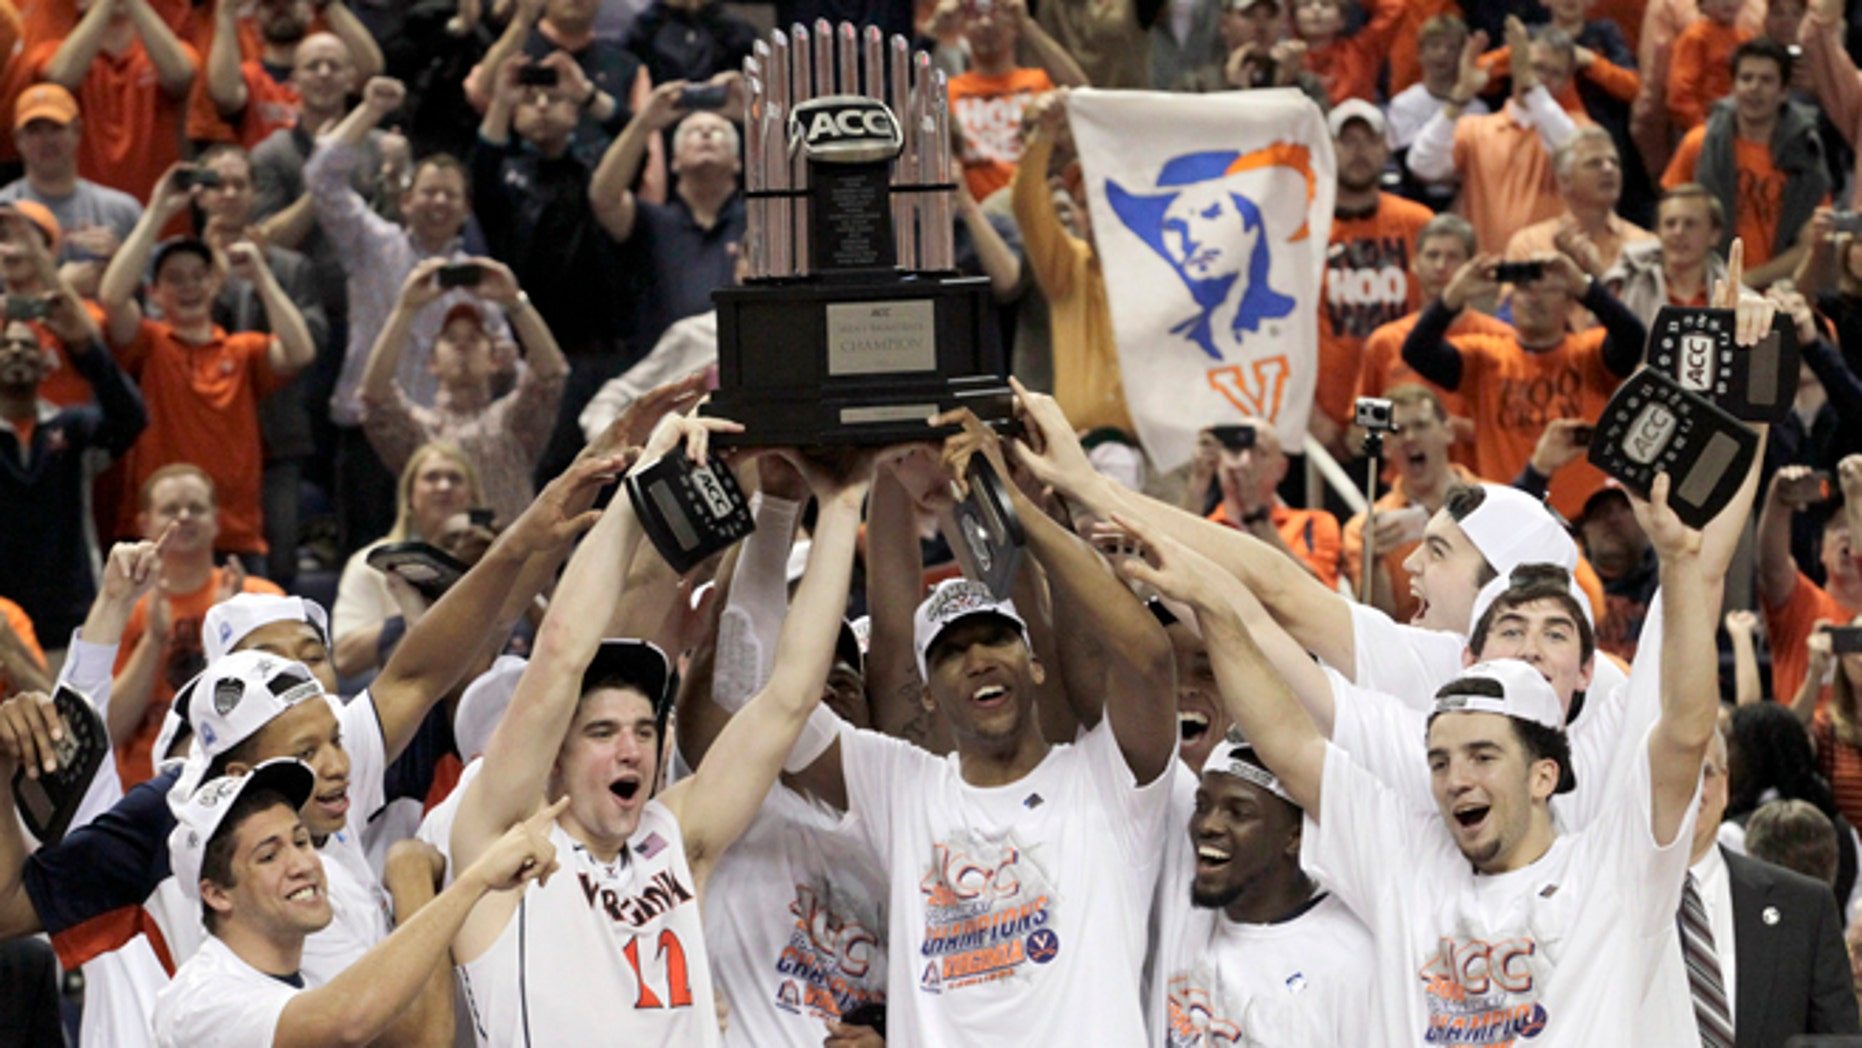 Virginia players celebrate with the trophy after defeating Duke in an NCAA college basketball game in the championship of the Atlantic Coast Conference tournament in Greensboro, N.C., Sunday, March 16, 2014. Virginia won 72-63. (AP Photo/Bob Leverone)